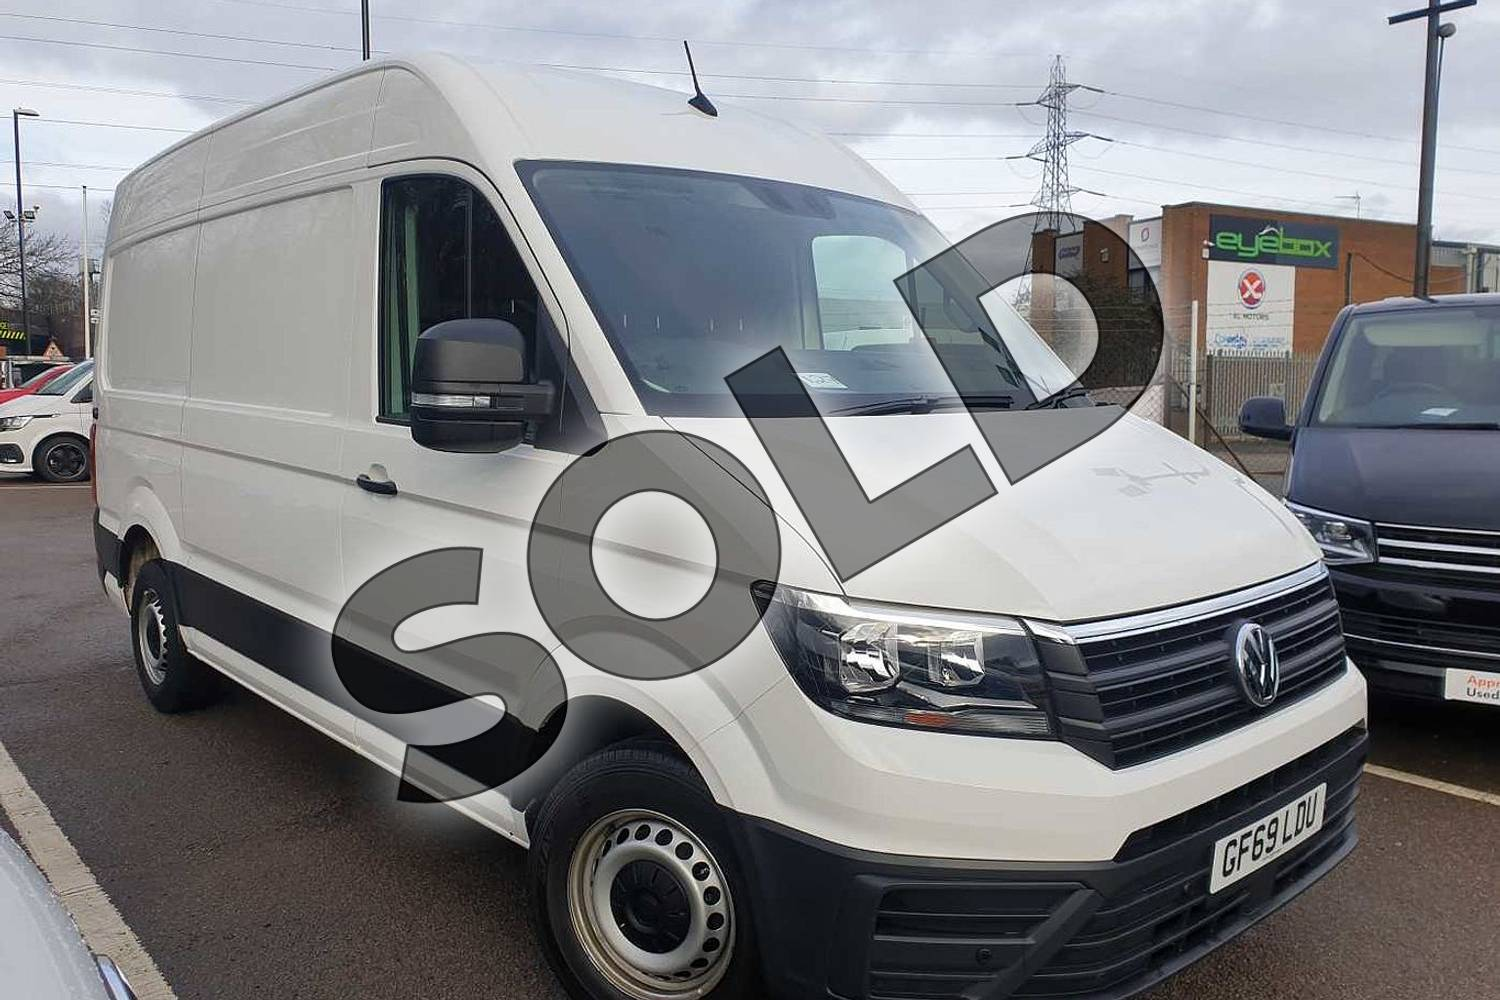 2019 Volkswagen Crafter CR35 MWB Diesel 2.0 TDI 177PS Trendline High Roof Van in White at Listers Volkswagen Van Centre Coventry